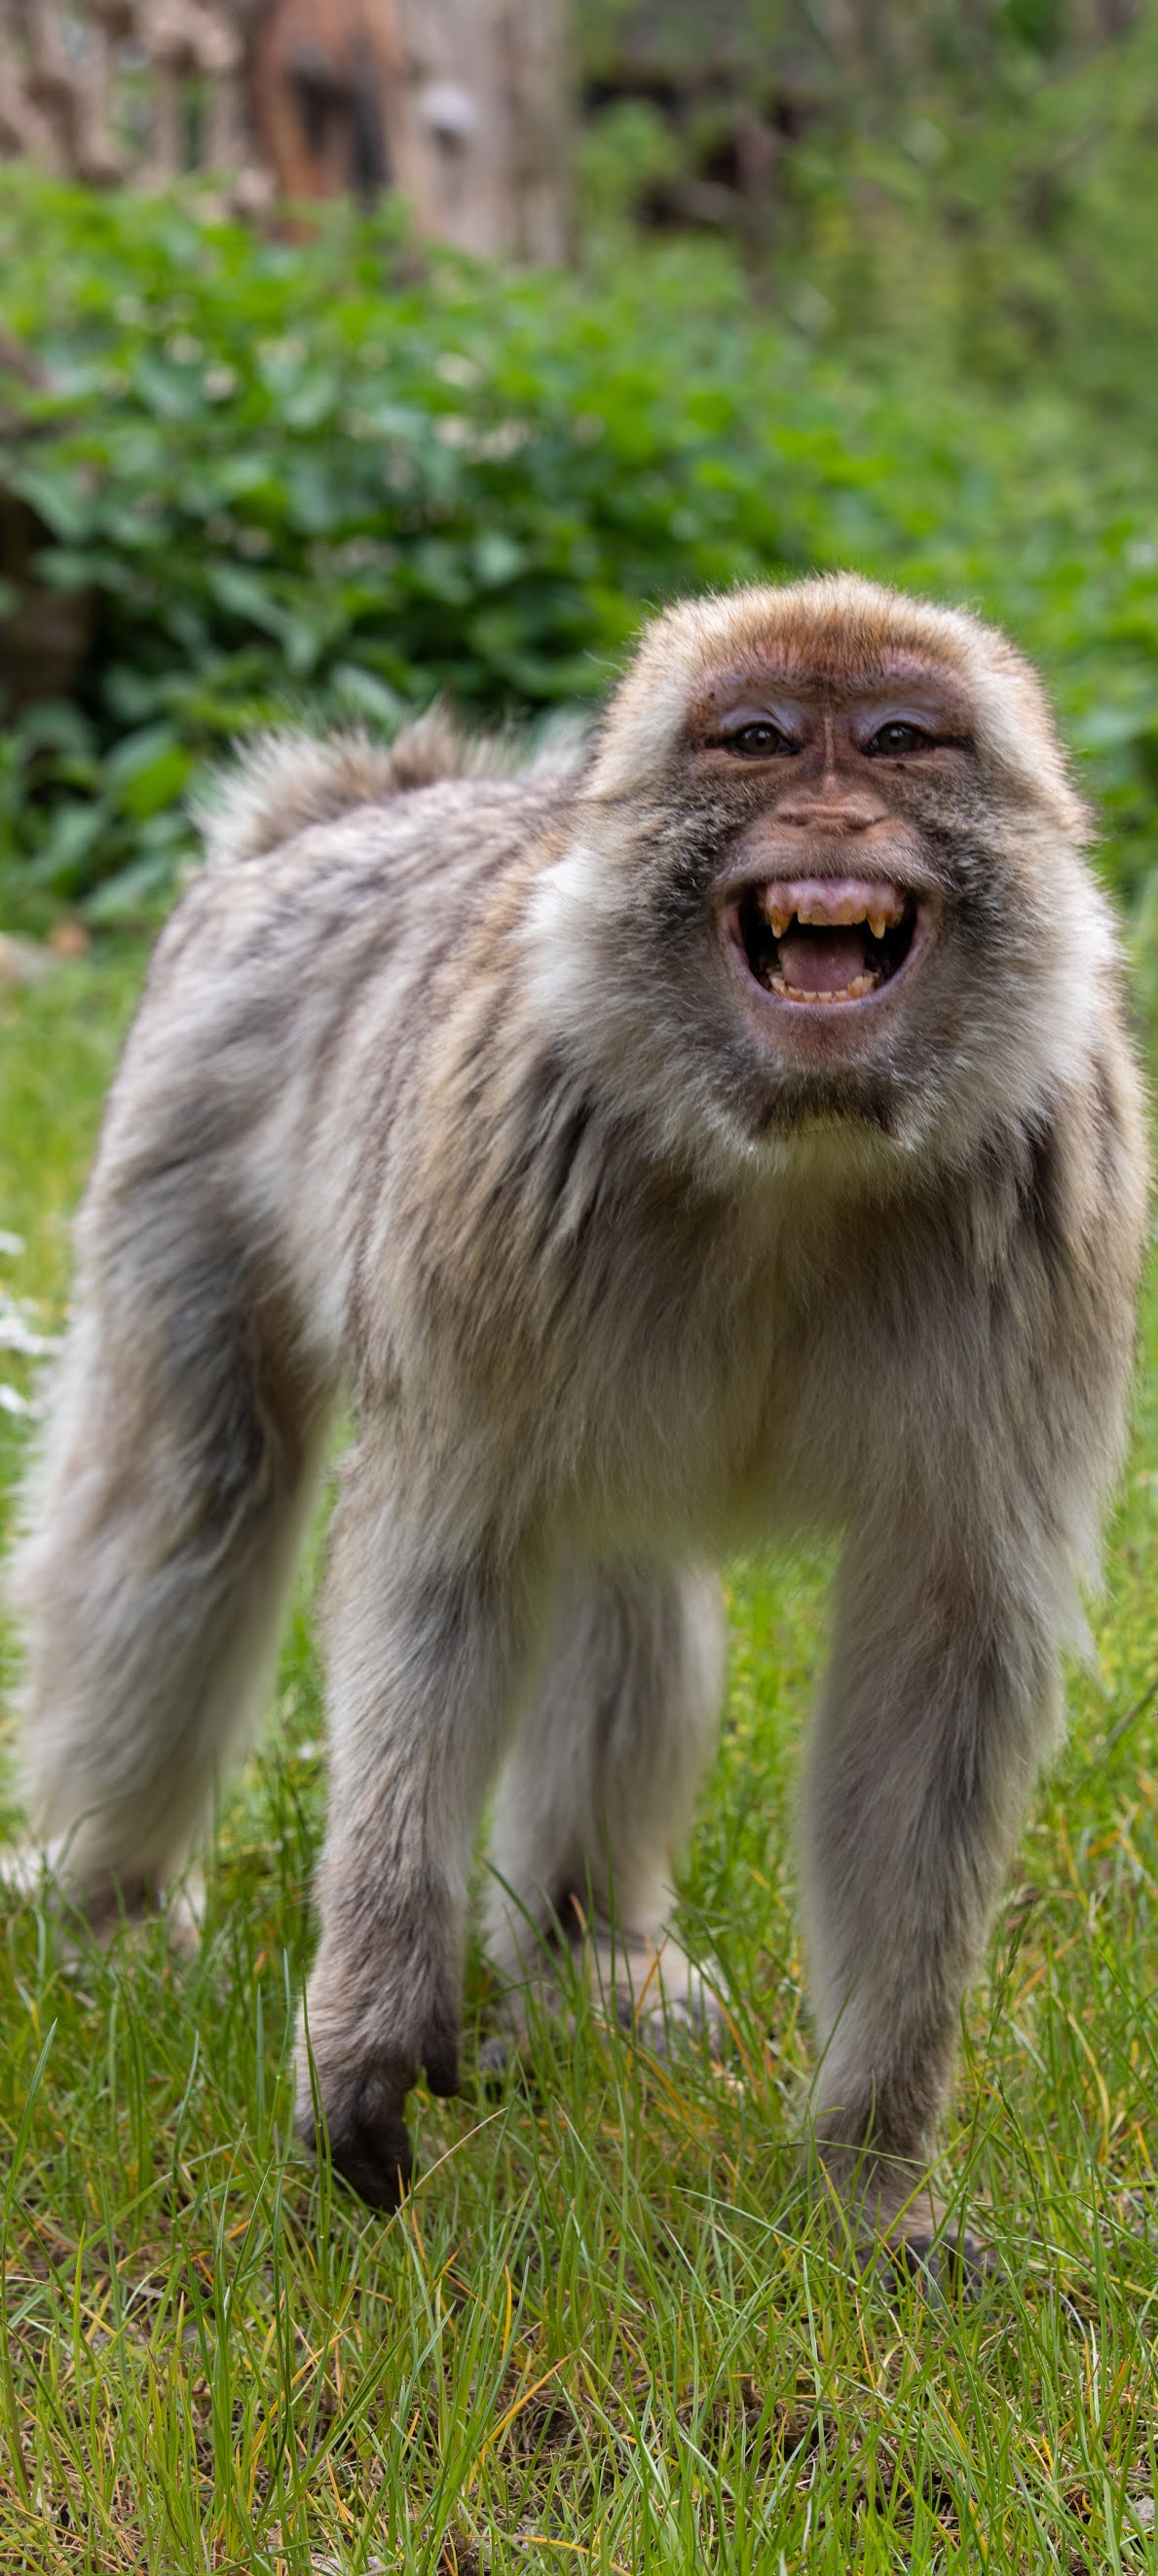 A barbary macaque clearly amused.